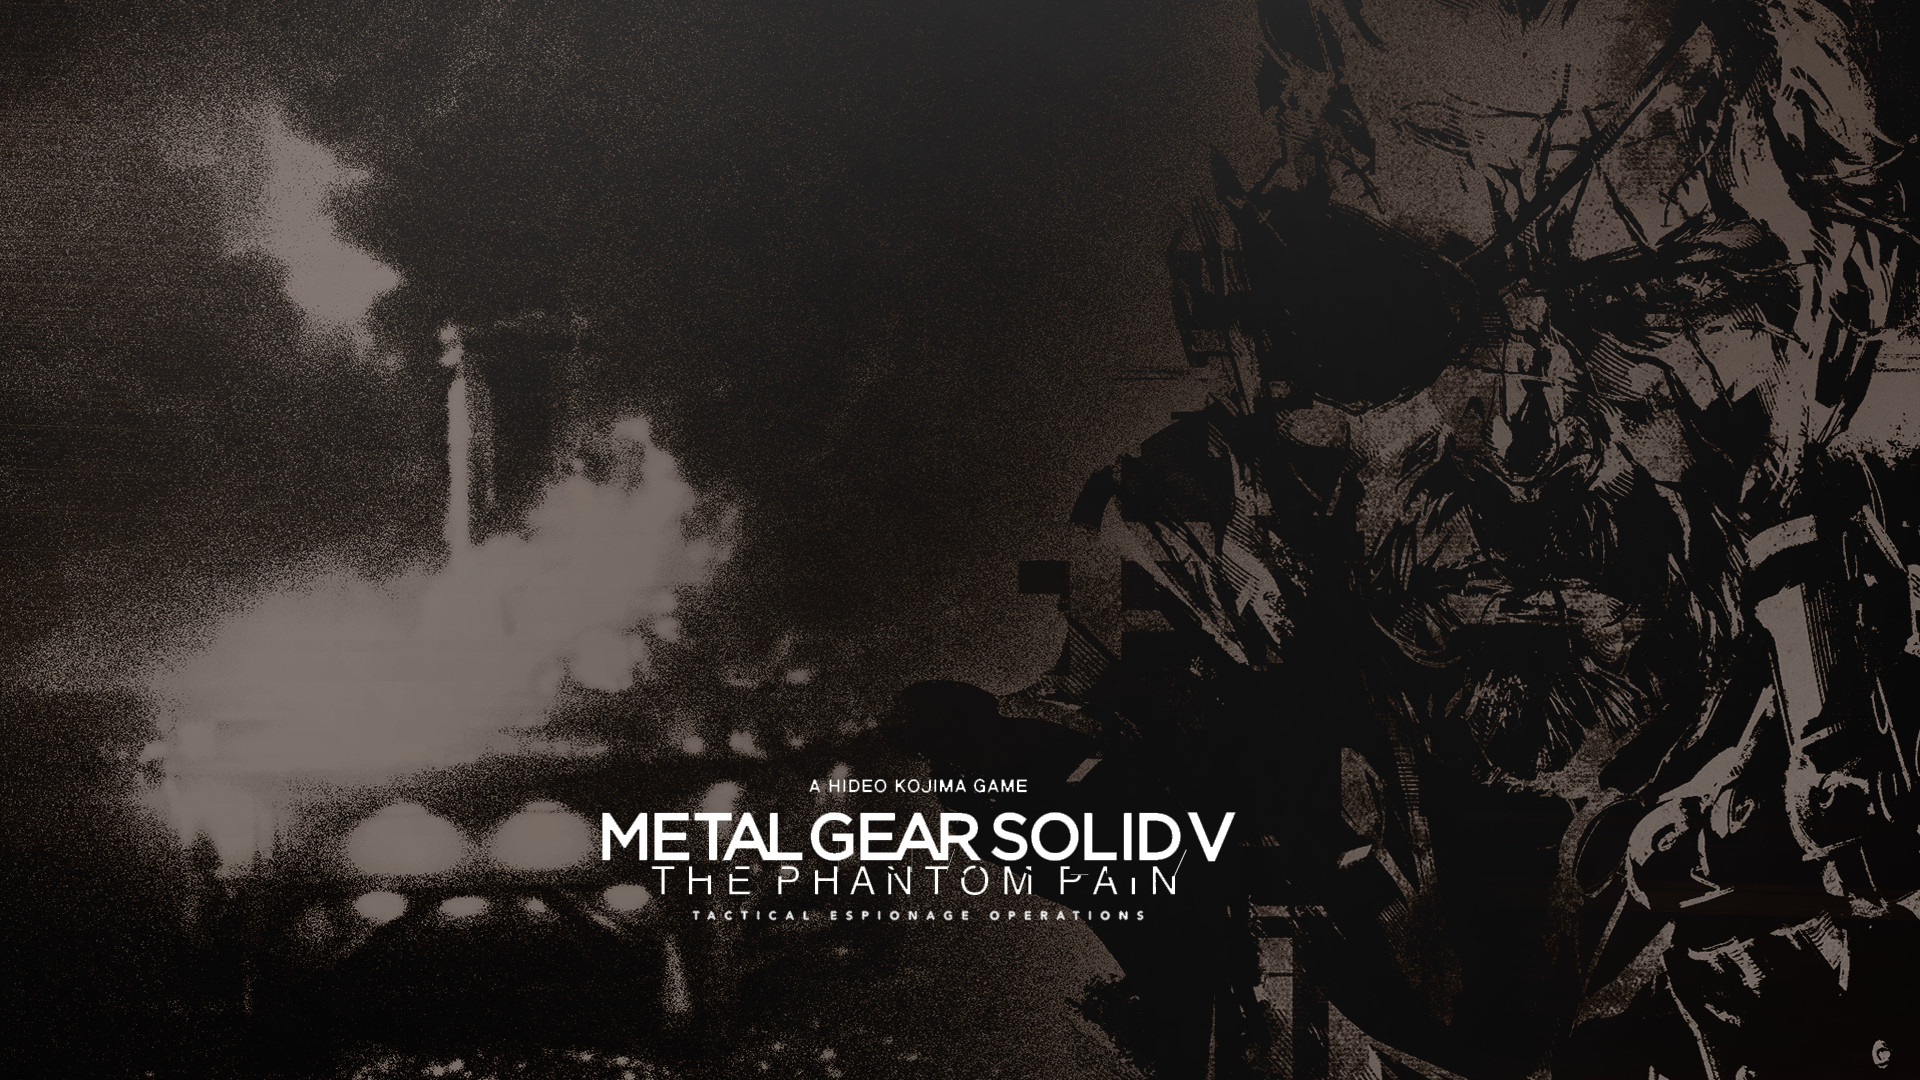 … Metal Gear Solid V: The Phantom Pain Wallpaper by iFadeFresh